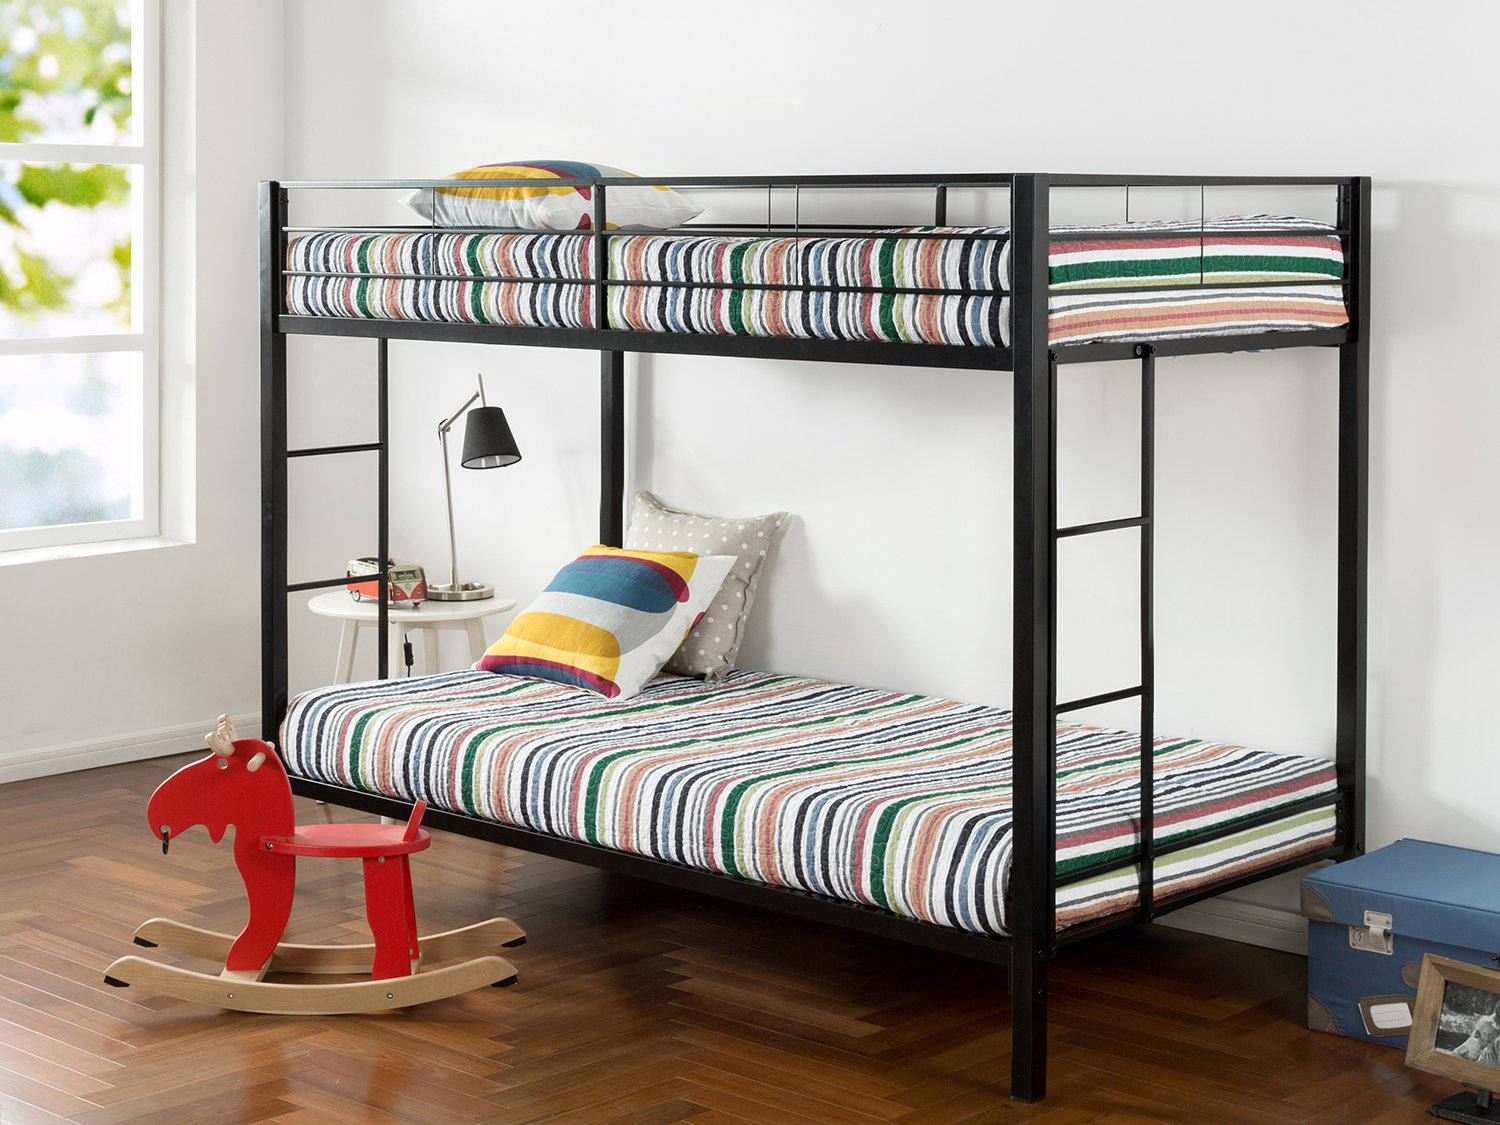 Zinus Aileene Easy Assembly Quick Lock Twin over Twin Classic Metal Bunk Bed with Dual Ladders / Quick to Assemble in Under an Hour by Zinus